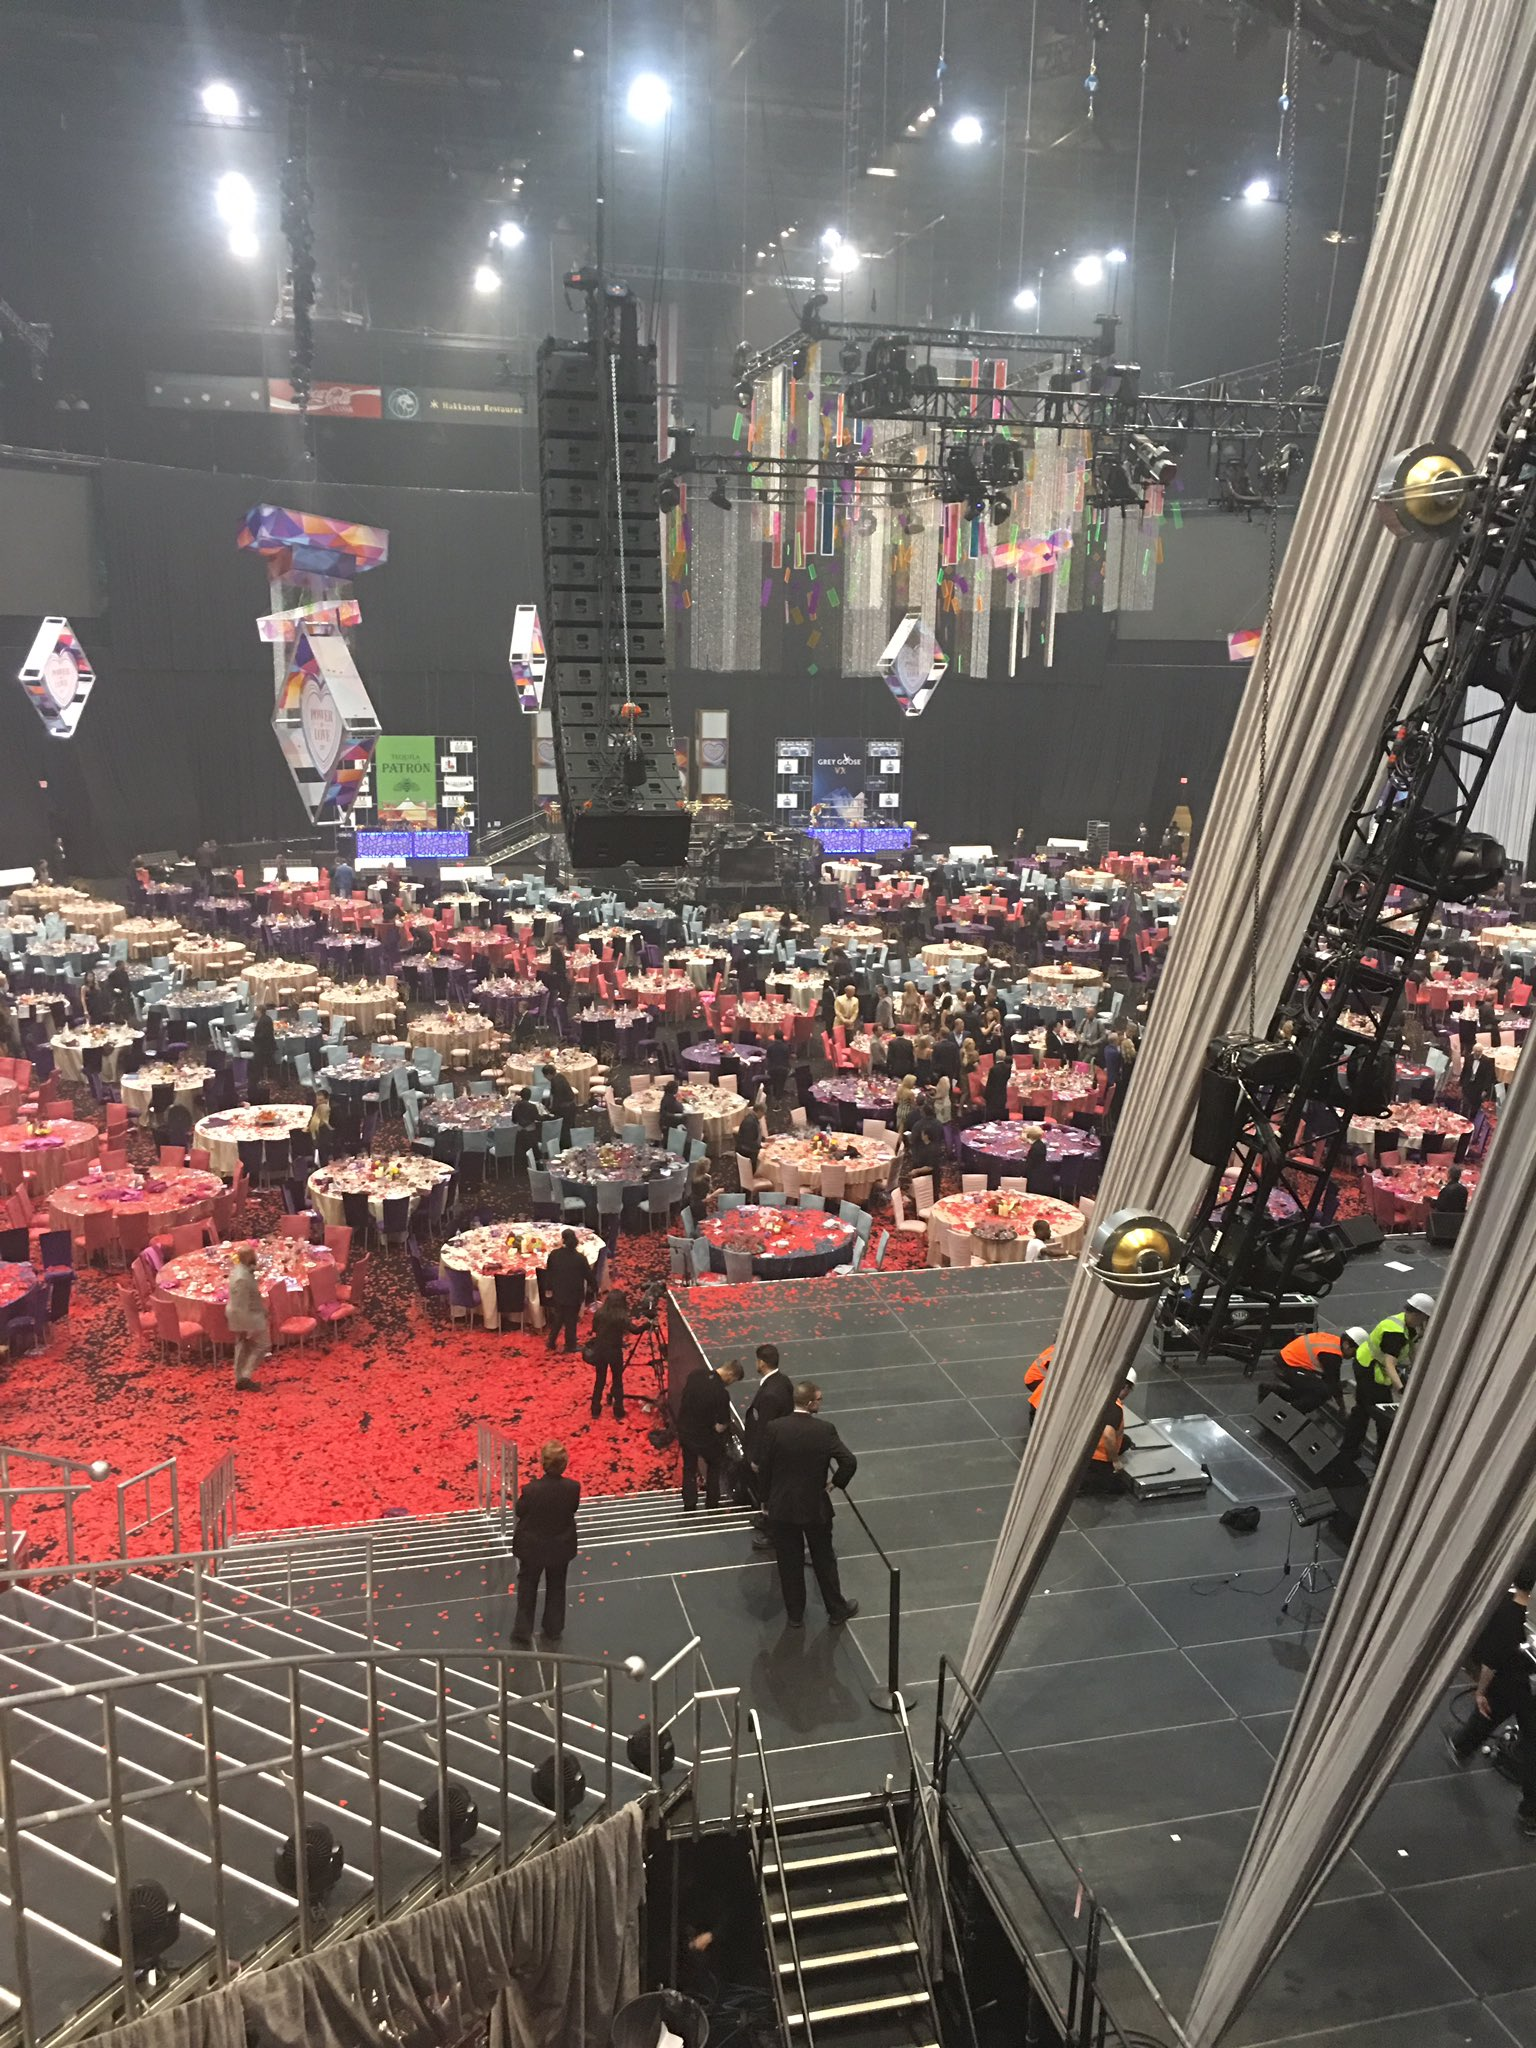 #TheAftermath ... #PowerOfLove @MGMGrand https://t.co/96ykzSI2PX